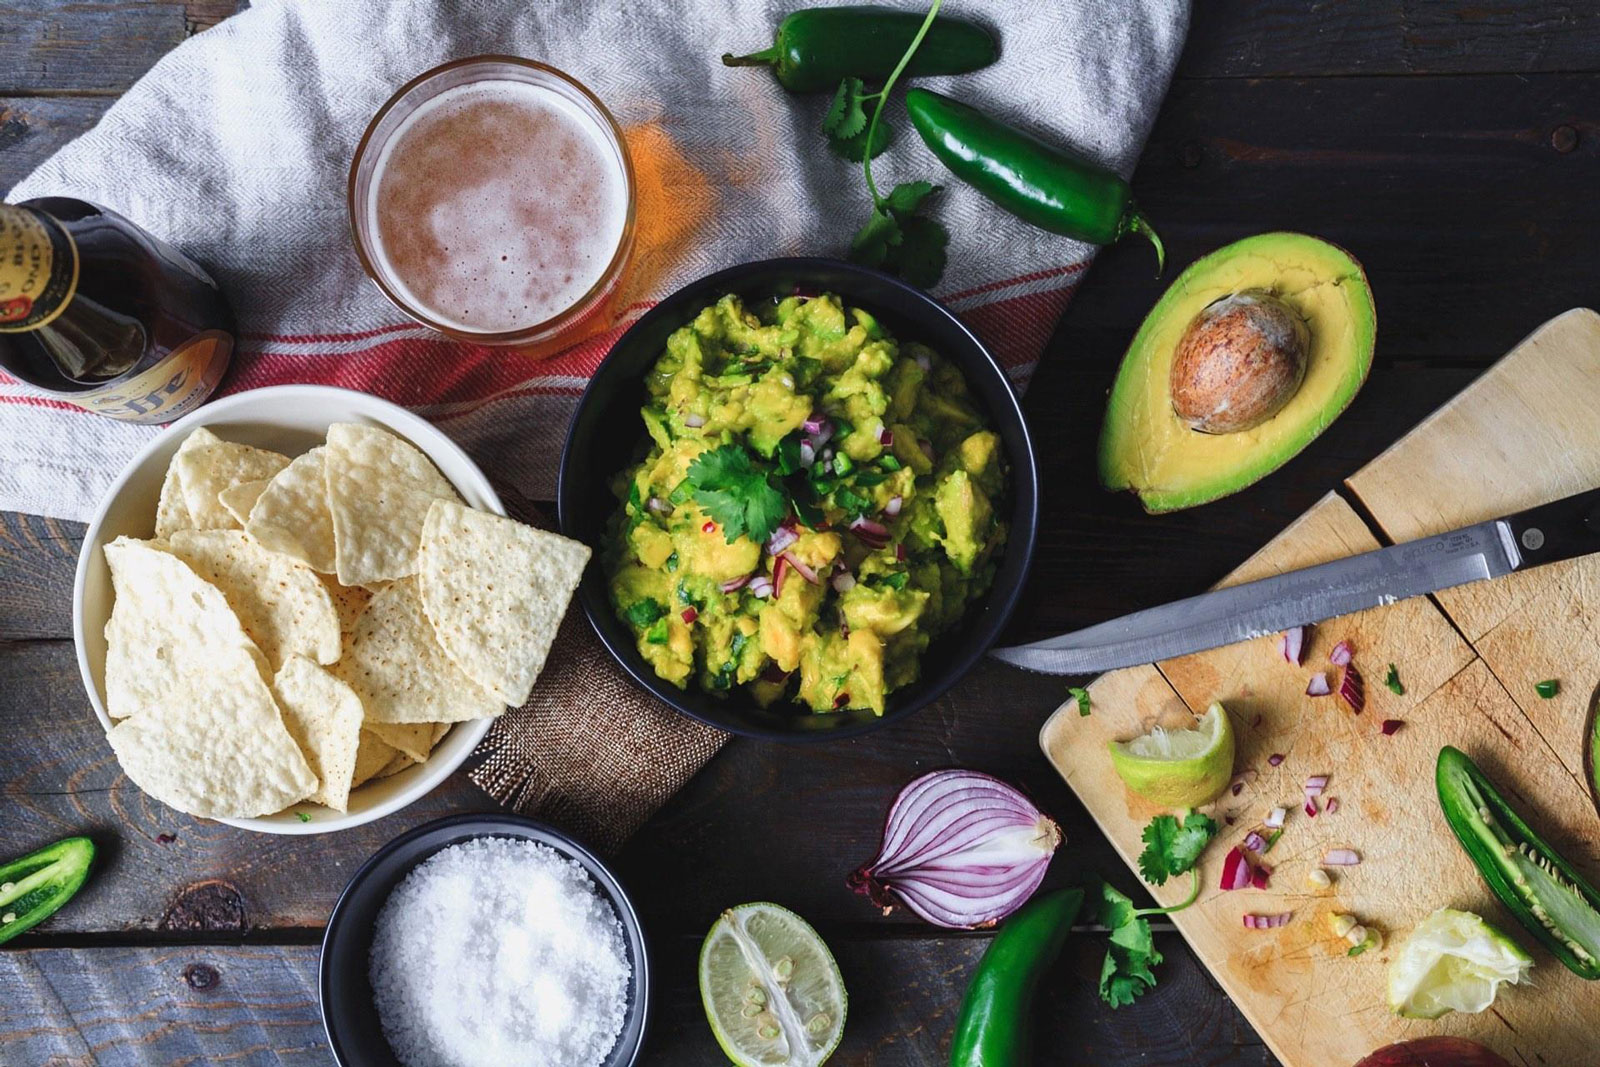 Easy To Make Fresh Guacamole